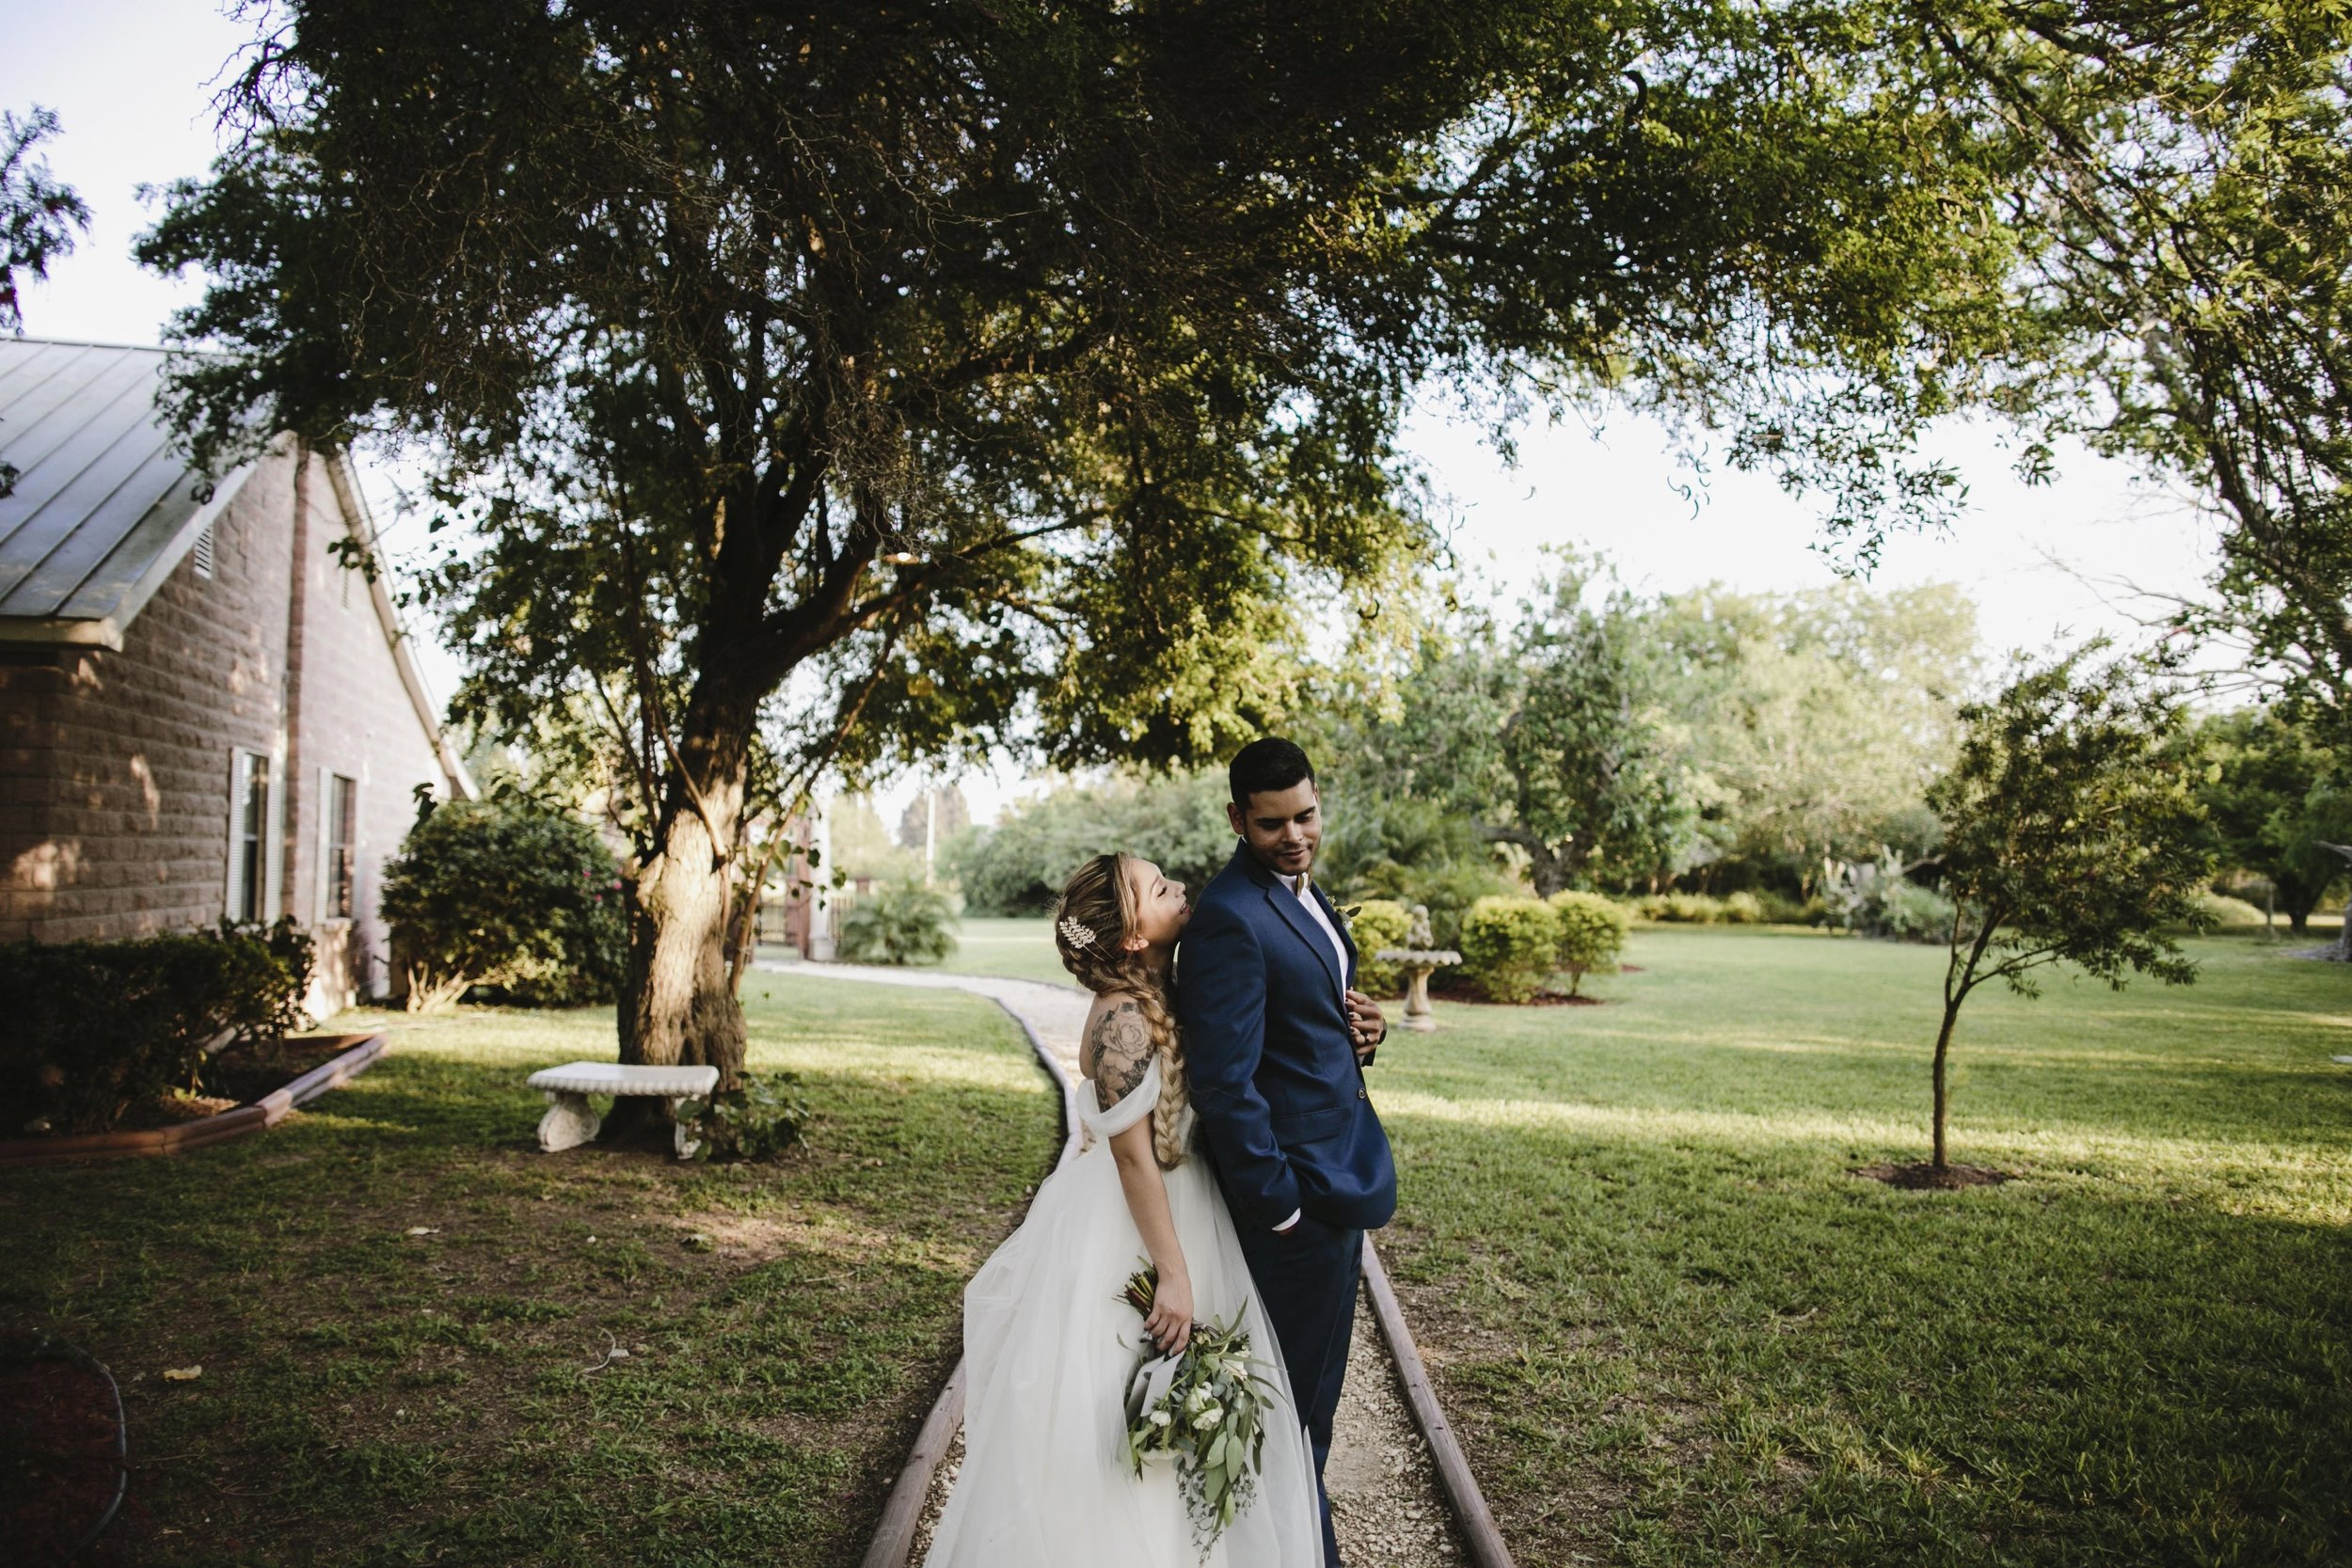 alfonso_flores_destination_wedding_photography_rancho_la_pergola_brownsville_texas_3.jpg